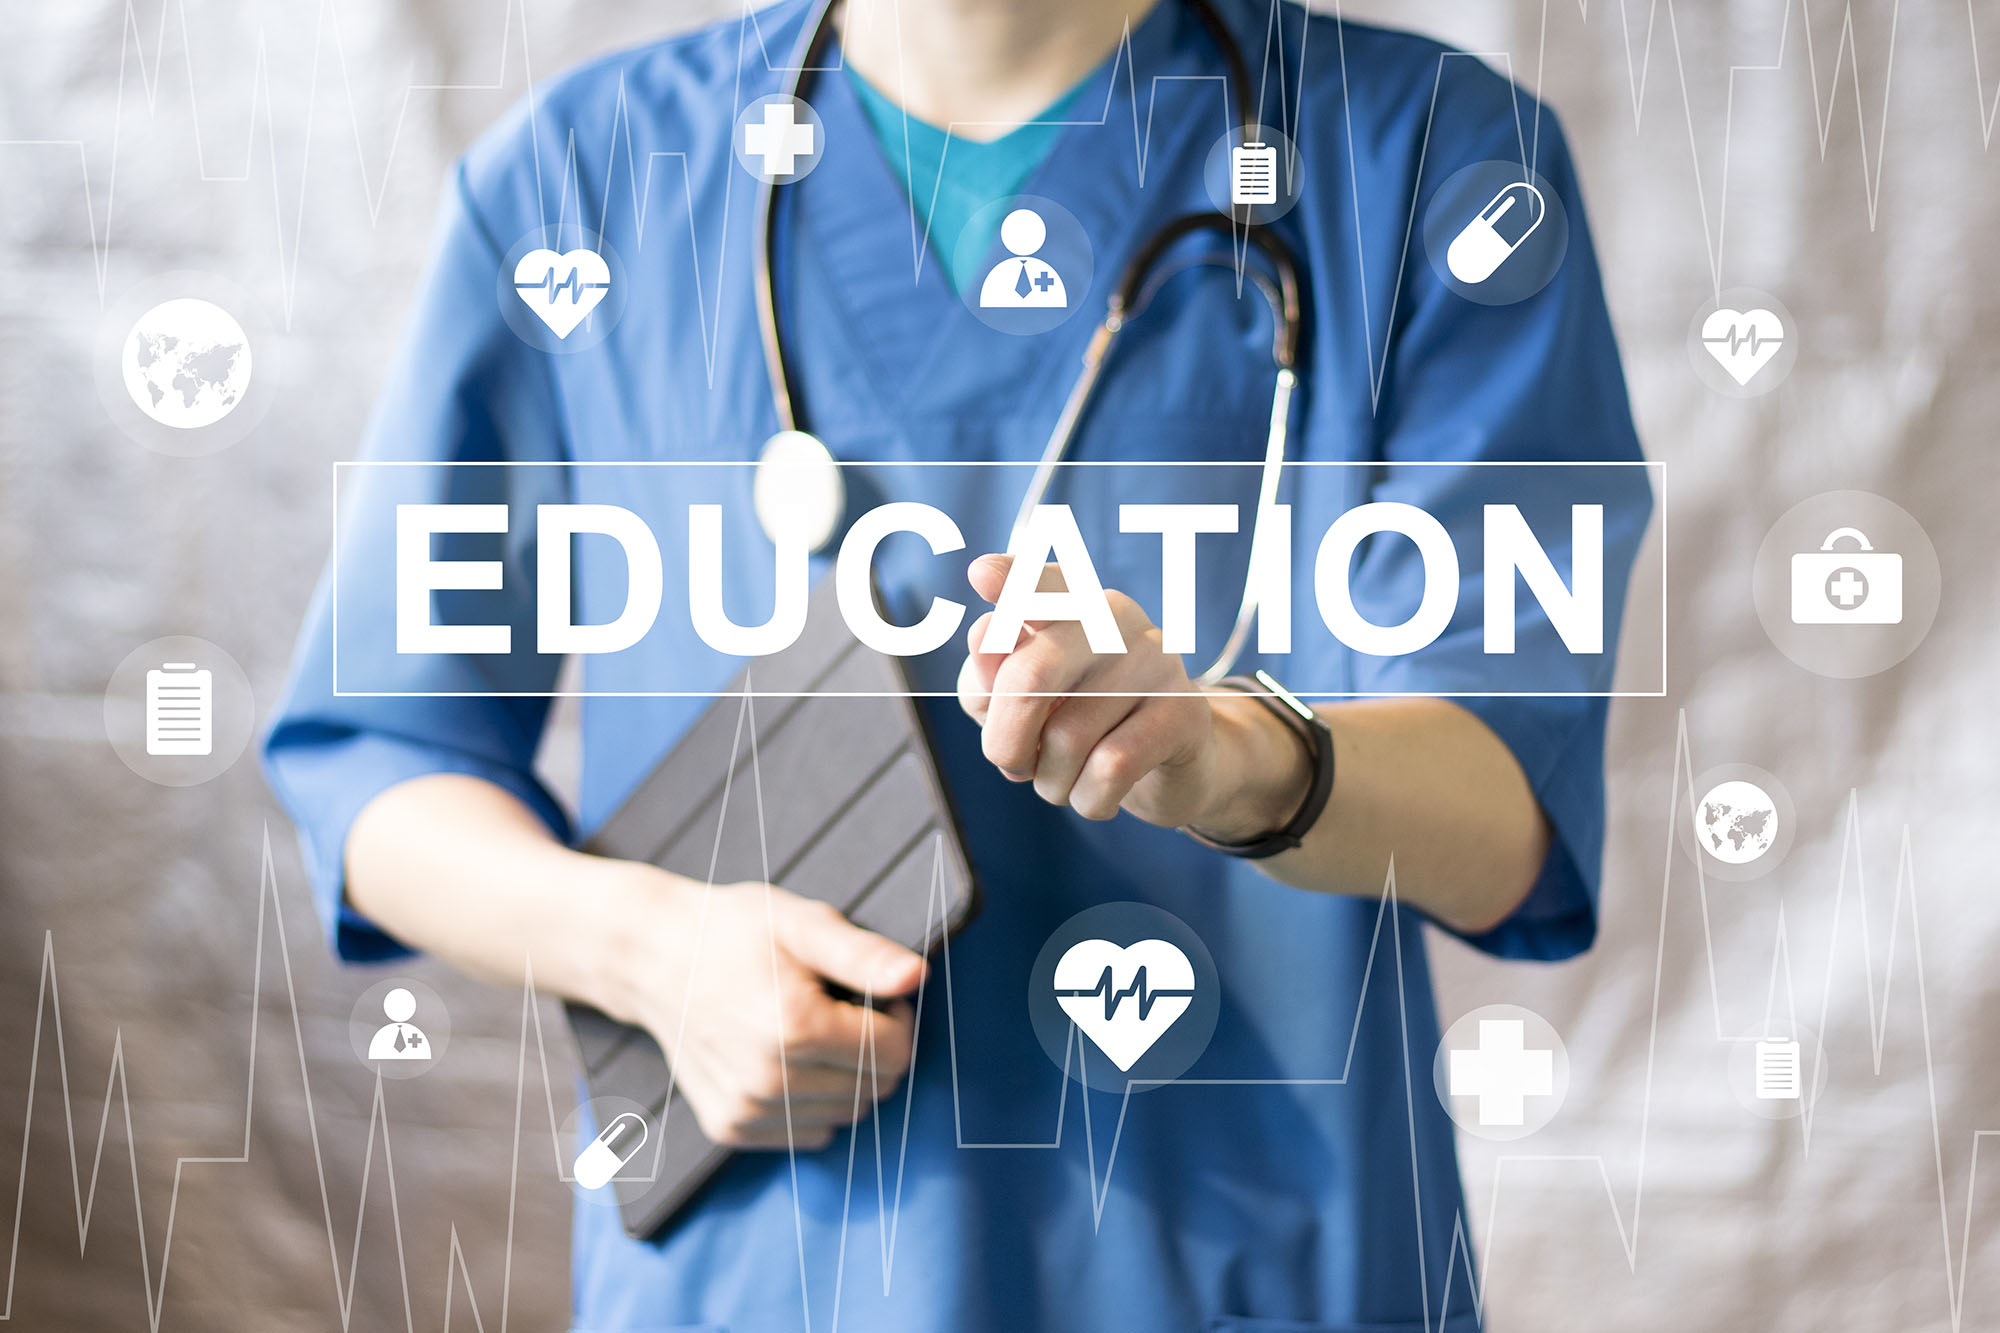 A health care professional wearing scrubs touches the word Education